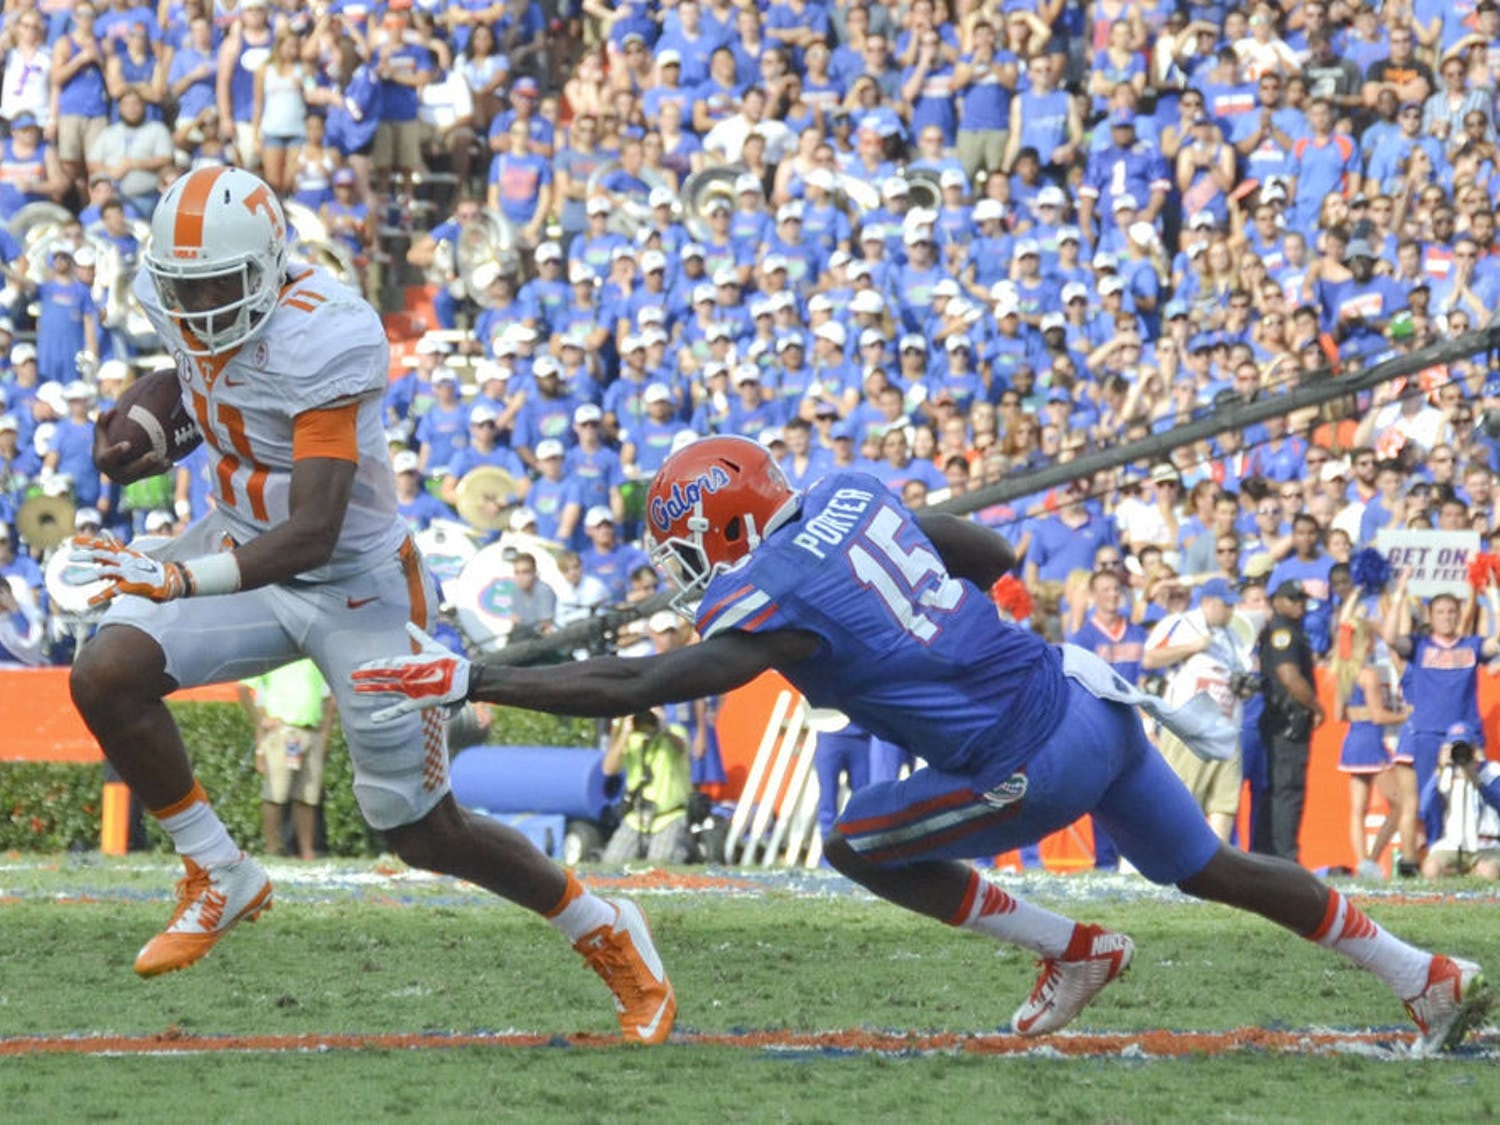 UF defensive back Deiondre Porter misses a tackle on Tennessee quarterback Josh Dobbs during Florida's 28-27 win on Sept. 26, 2015, at Ben Hill Griffin Stadium.